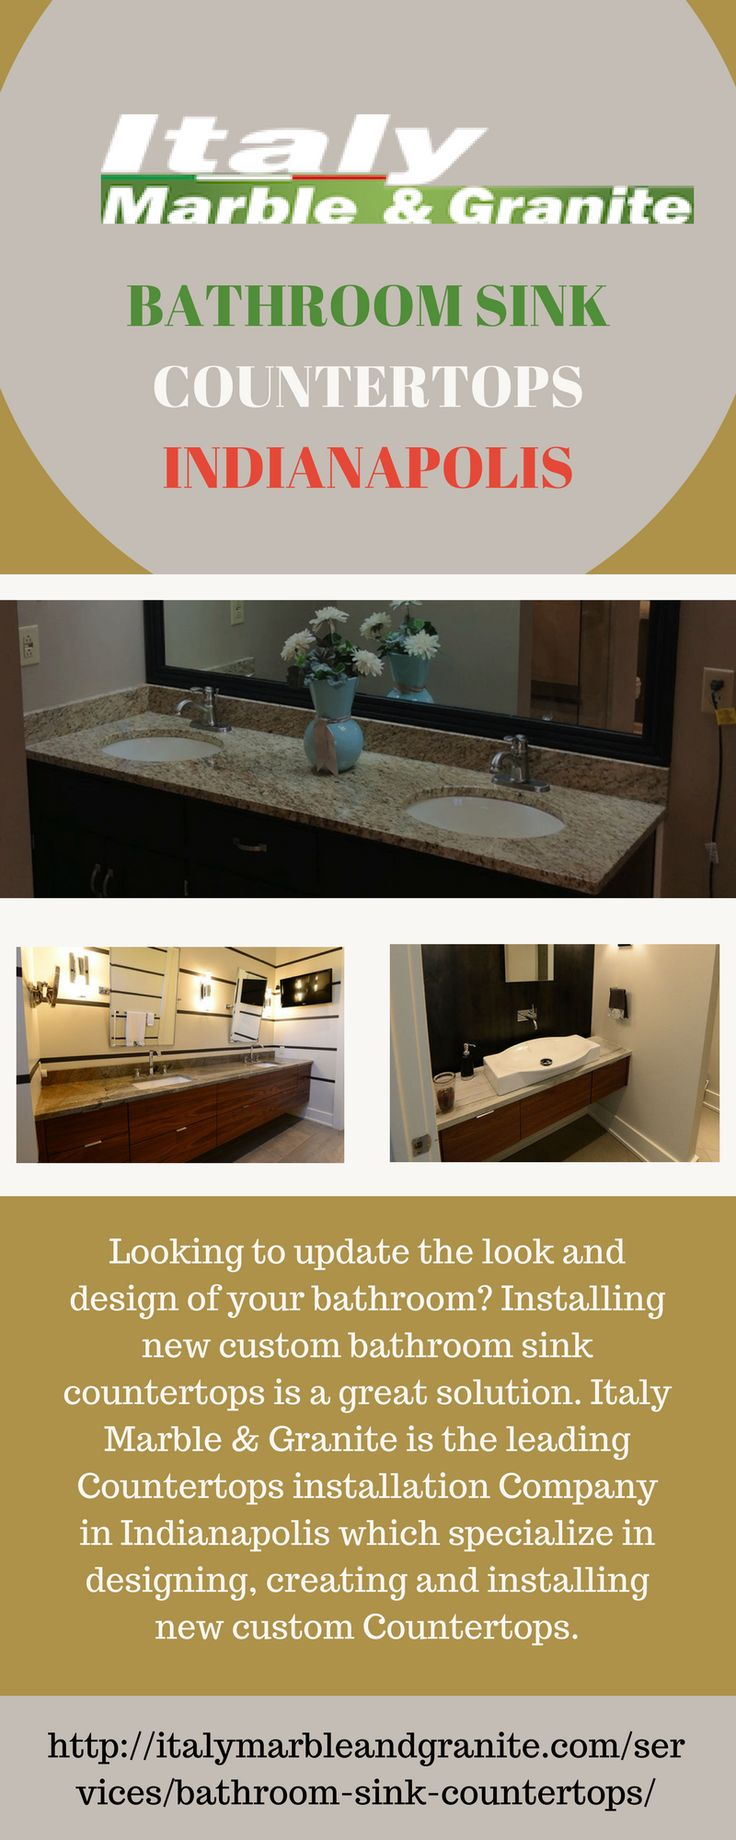 Looking For A Comfort And Ease To Use Bathroom? Change The Look And Feel Of  · Bathroom SinksBathroomsBar TopsGranite ...